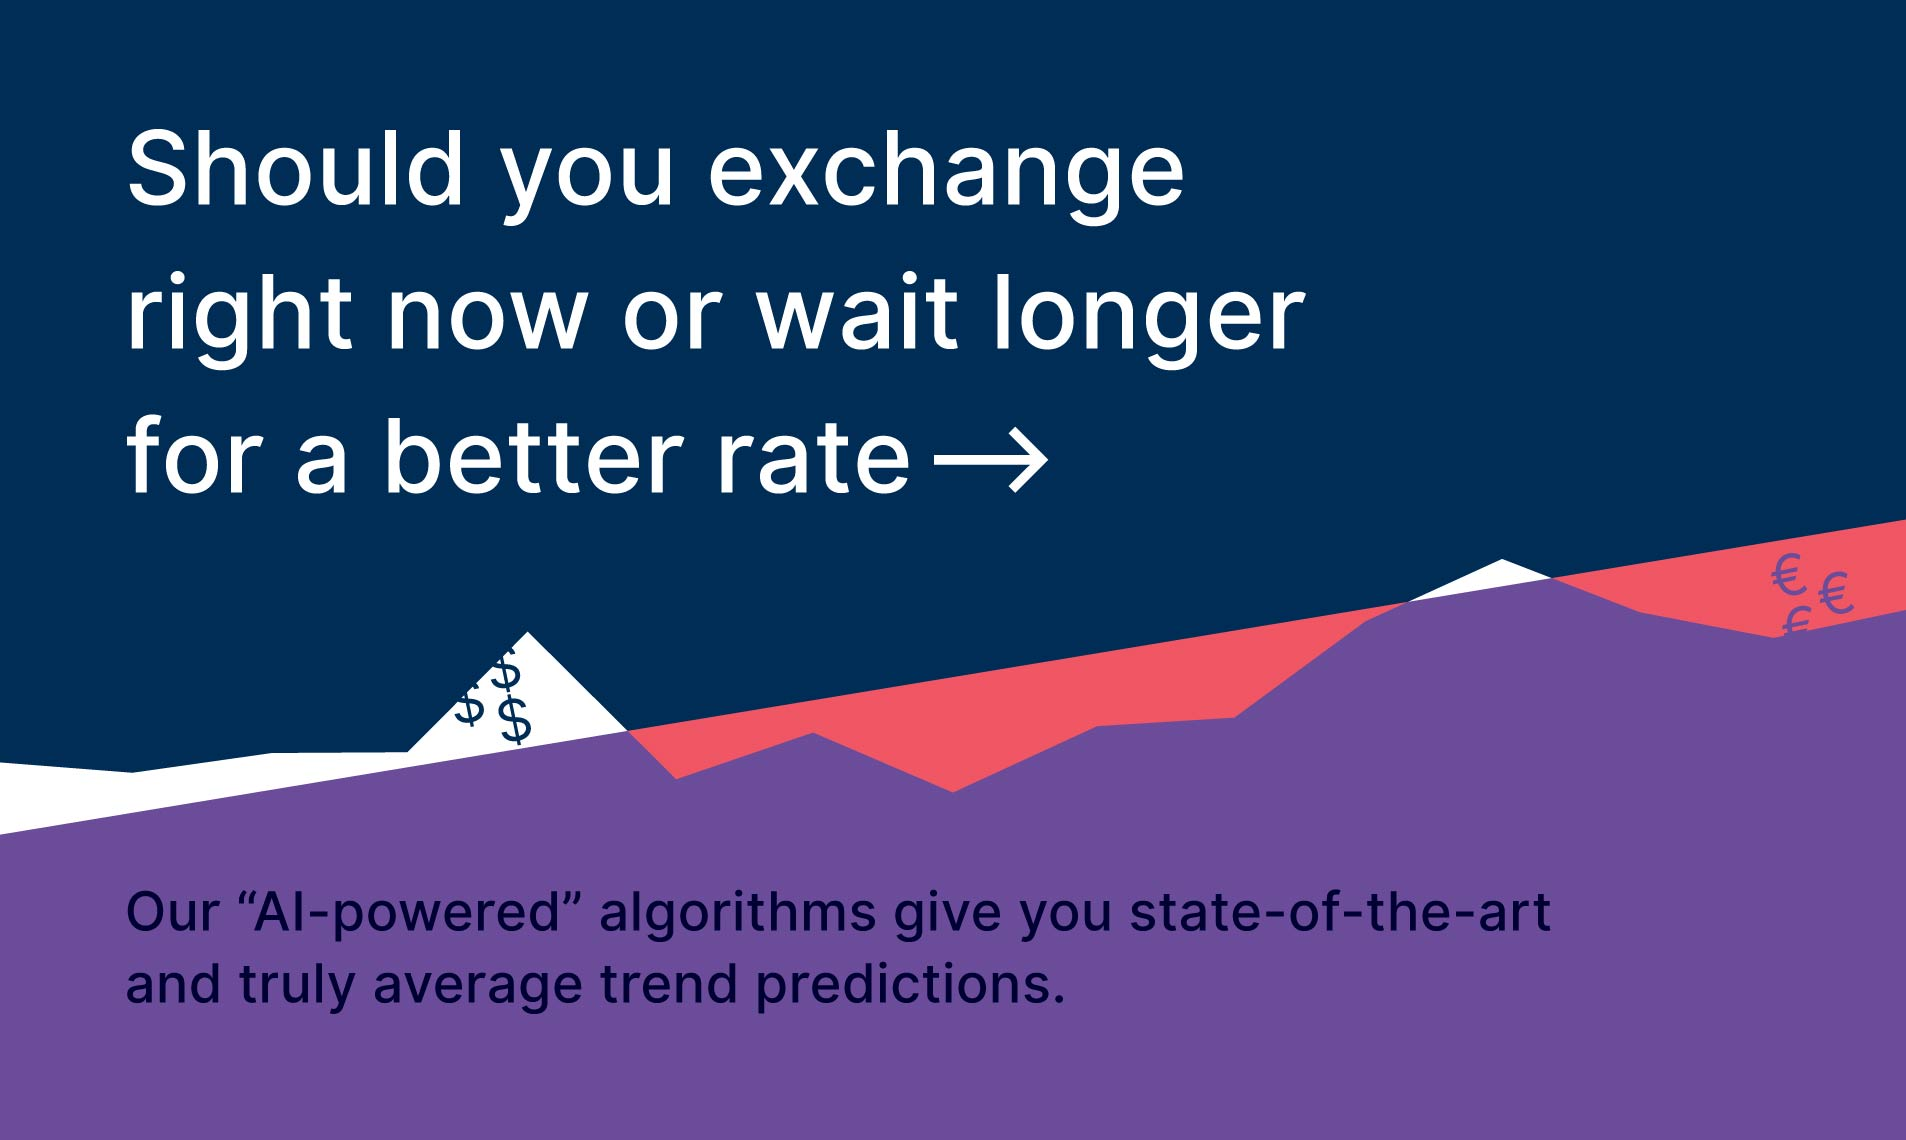 Should you exchange right now or wait longer for a better rate.